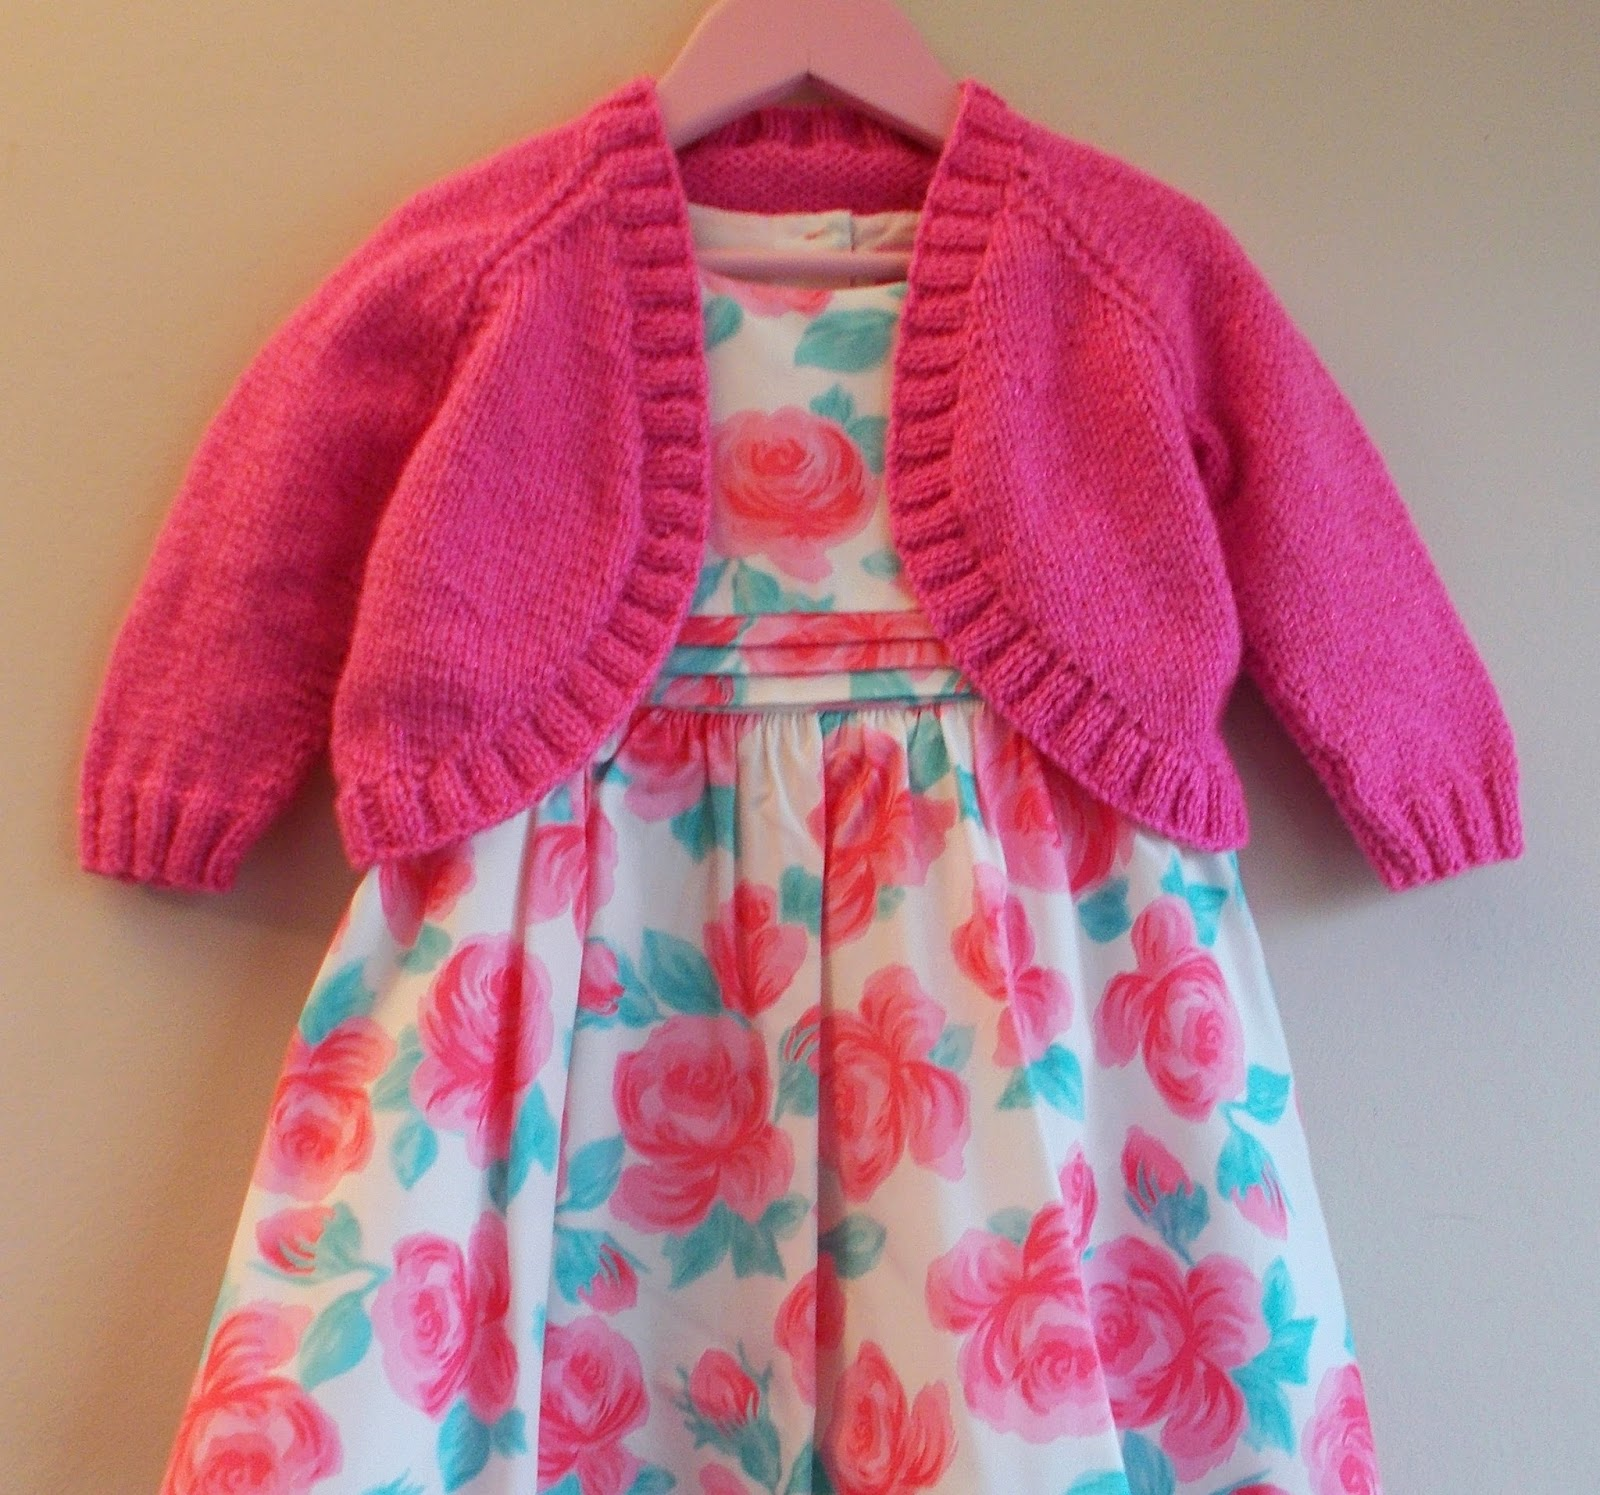 Free Knitting Patterns Girls : mariannas lazy daisy days: Pink Sparkle Girls Bolero